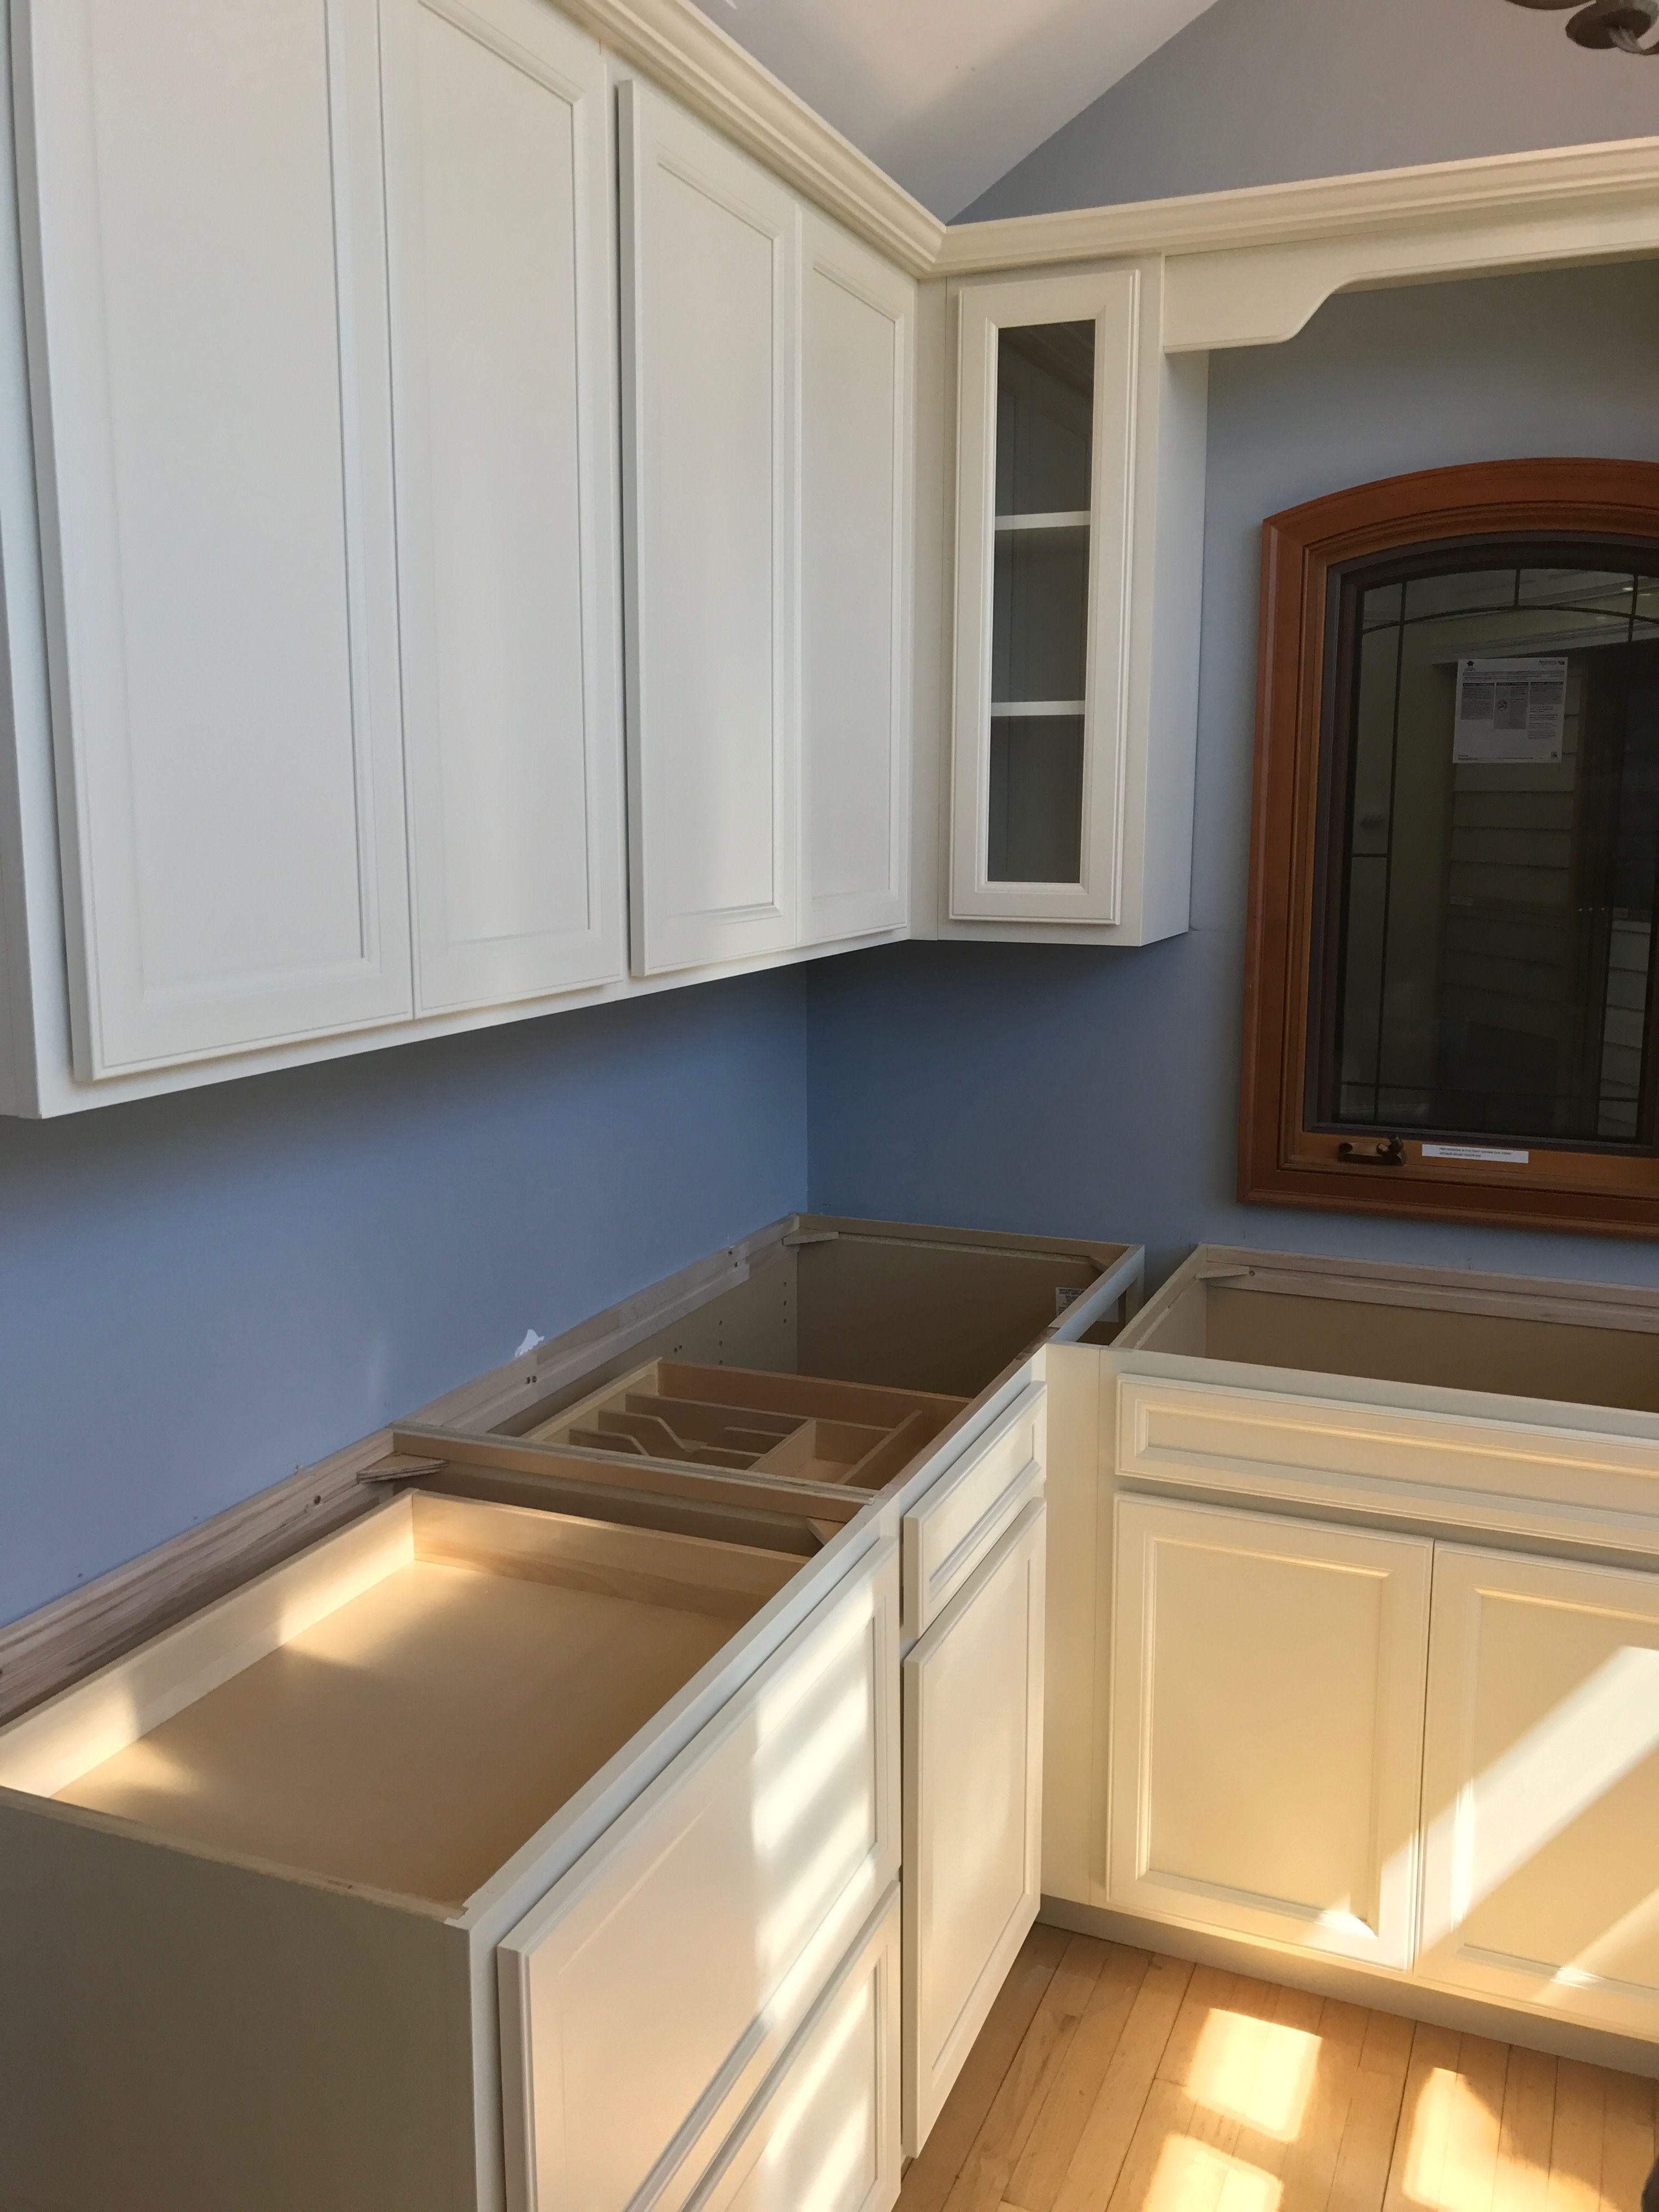 Downing Timberlake Cabinets Silk New Construction